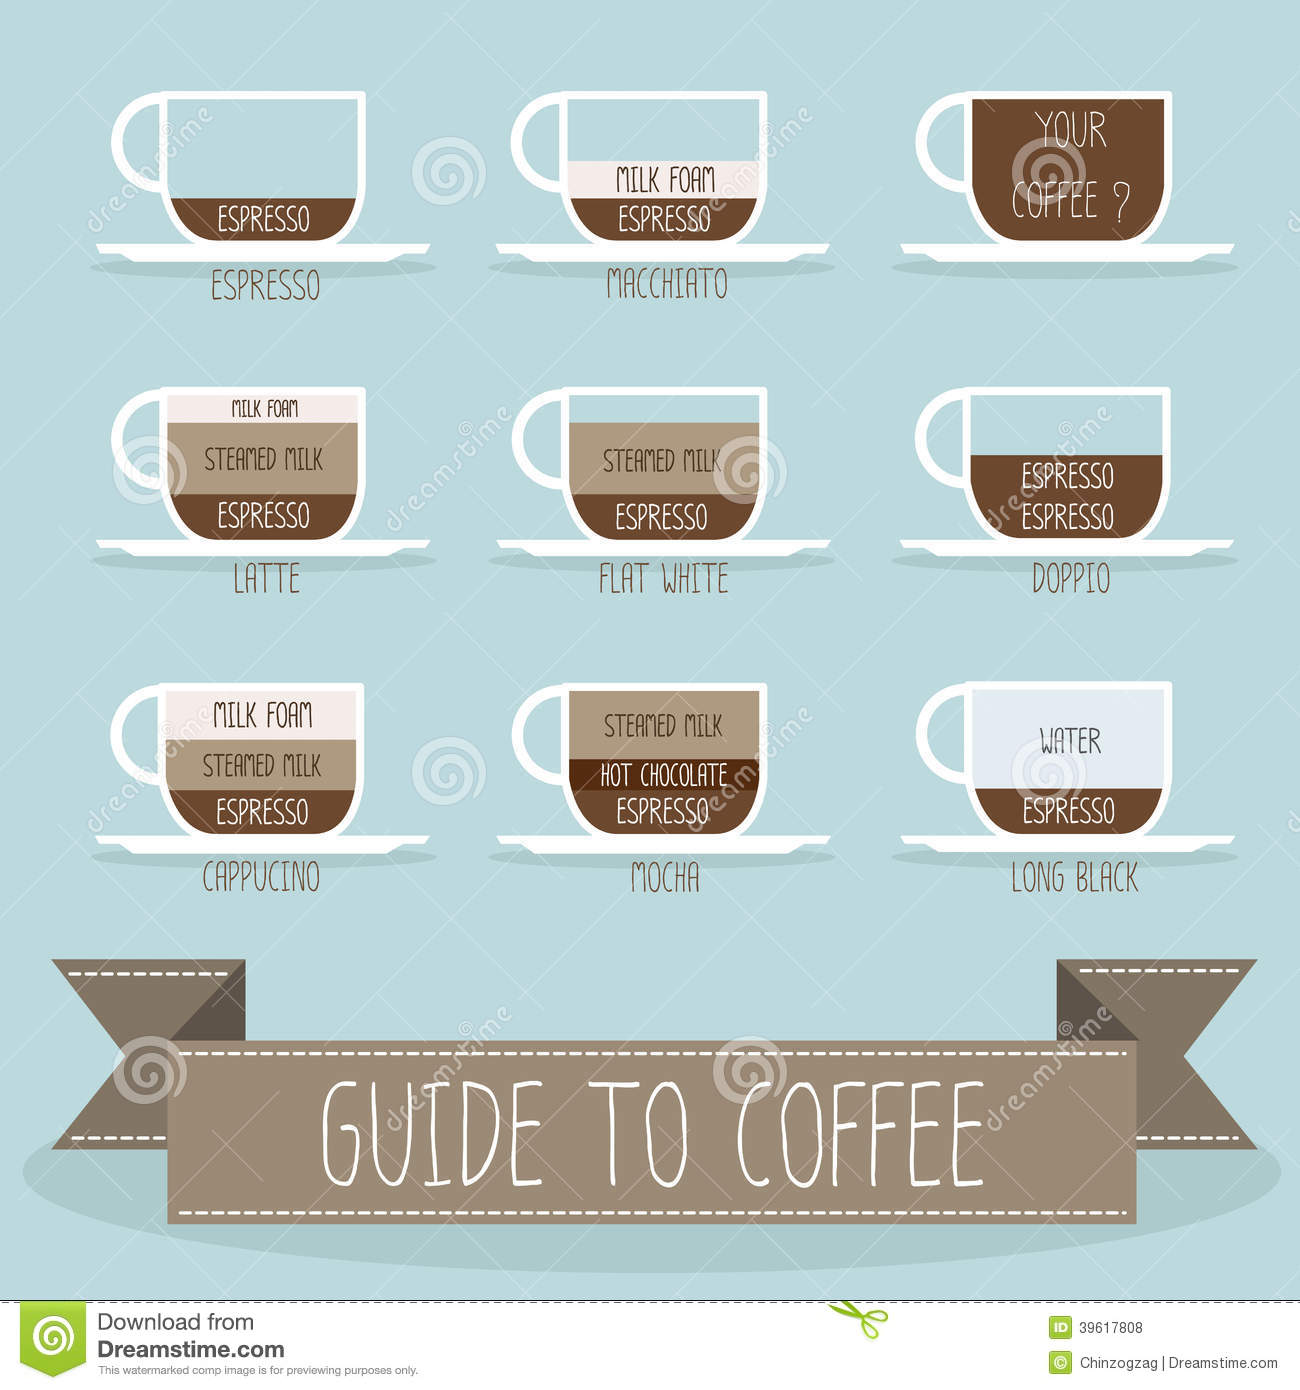 Guide To Coffee Stock Vector - Image: 39617808